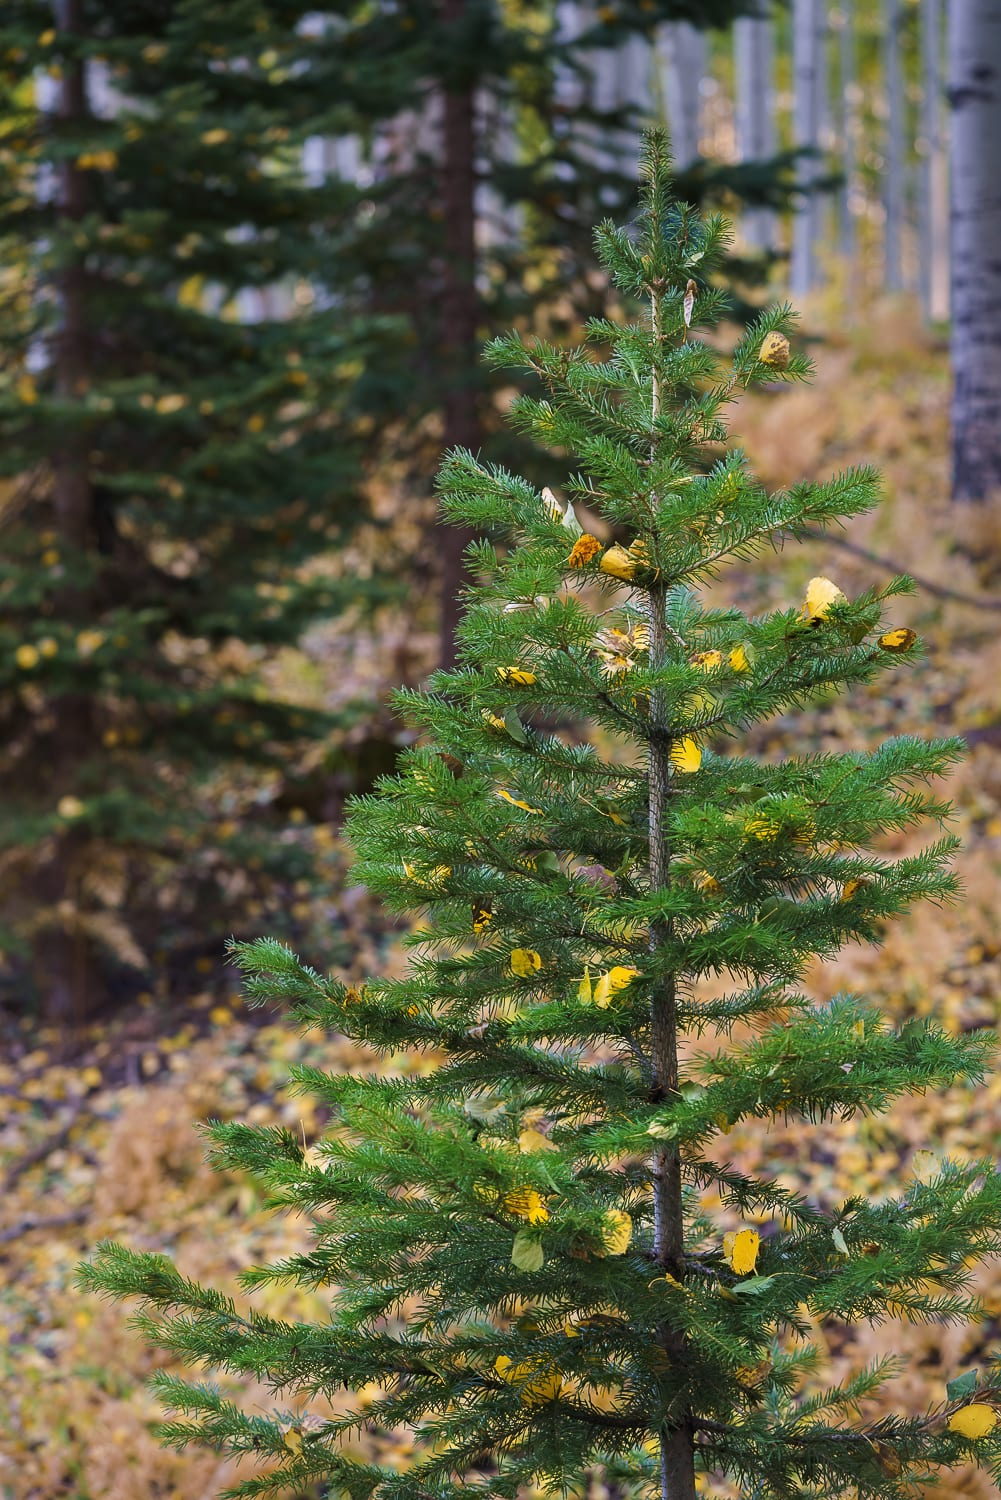 Small pine tree with aspen leaves on the branches.